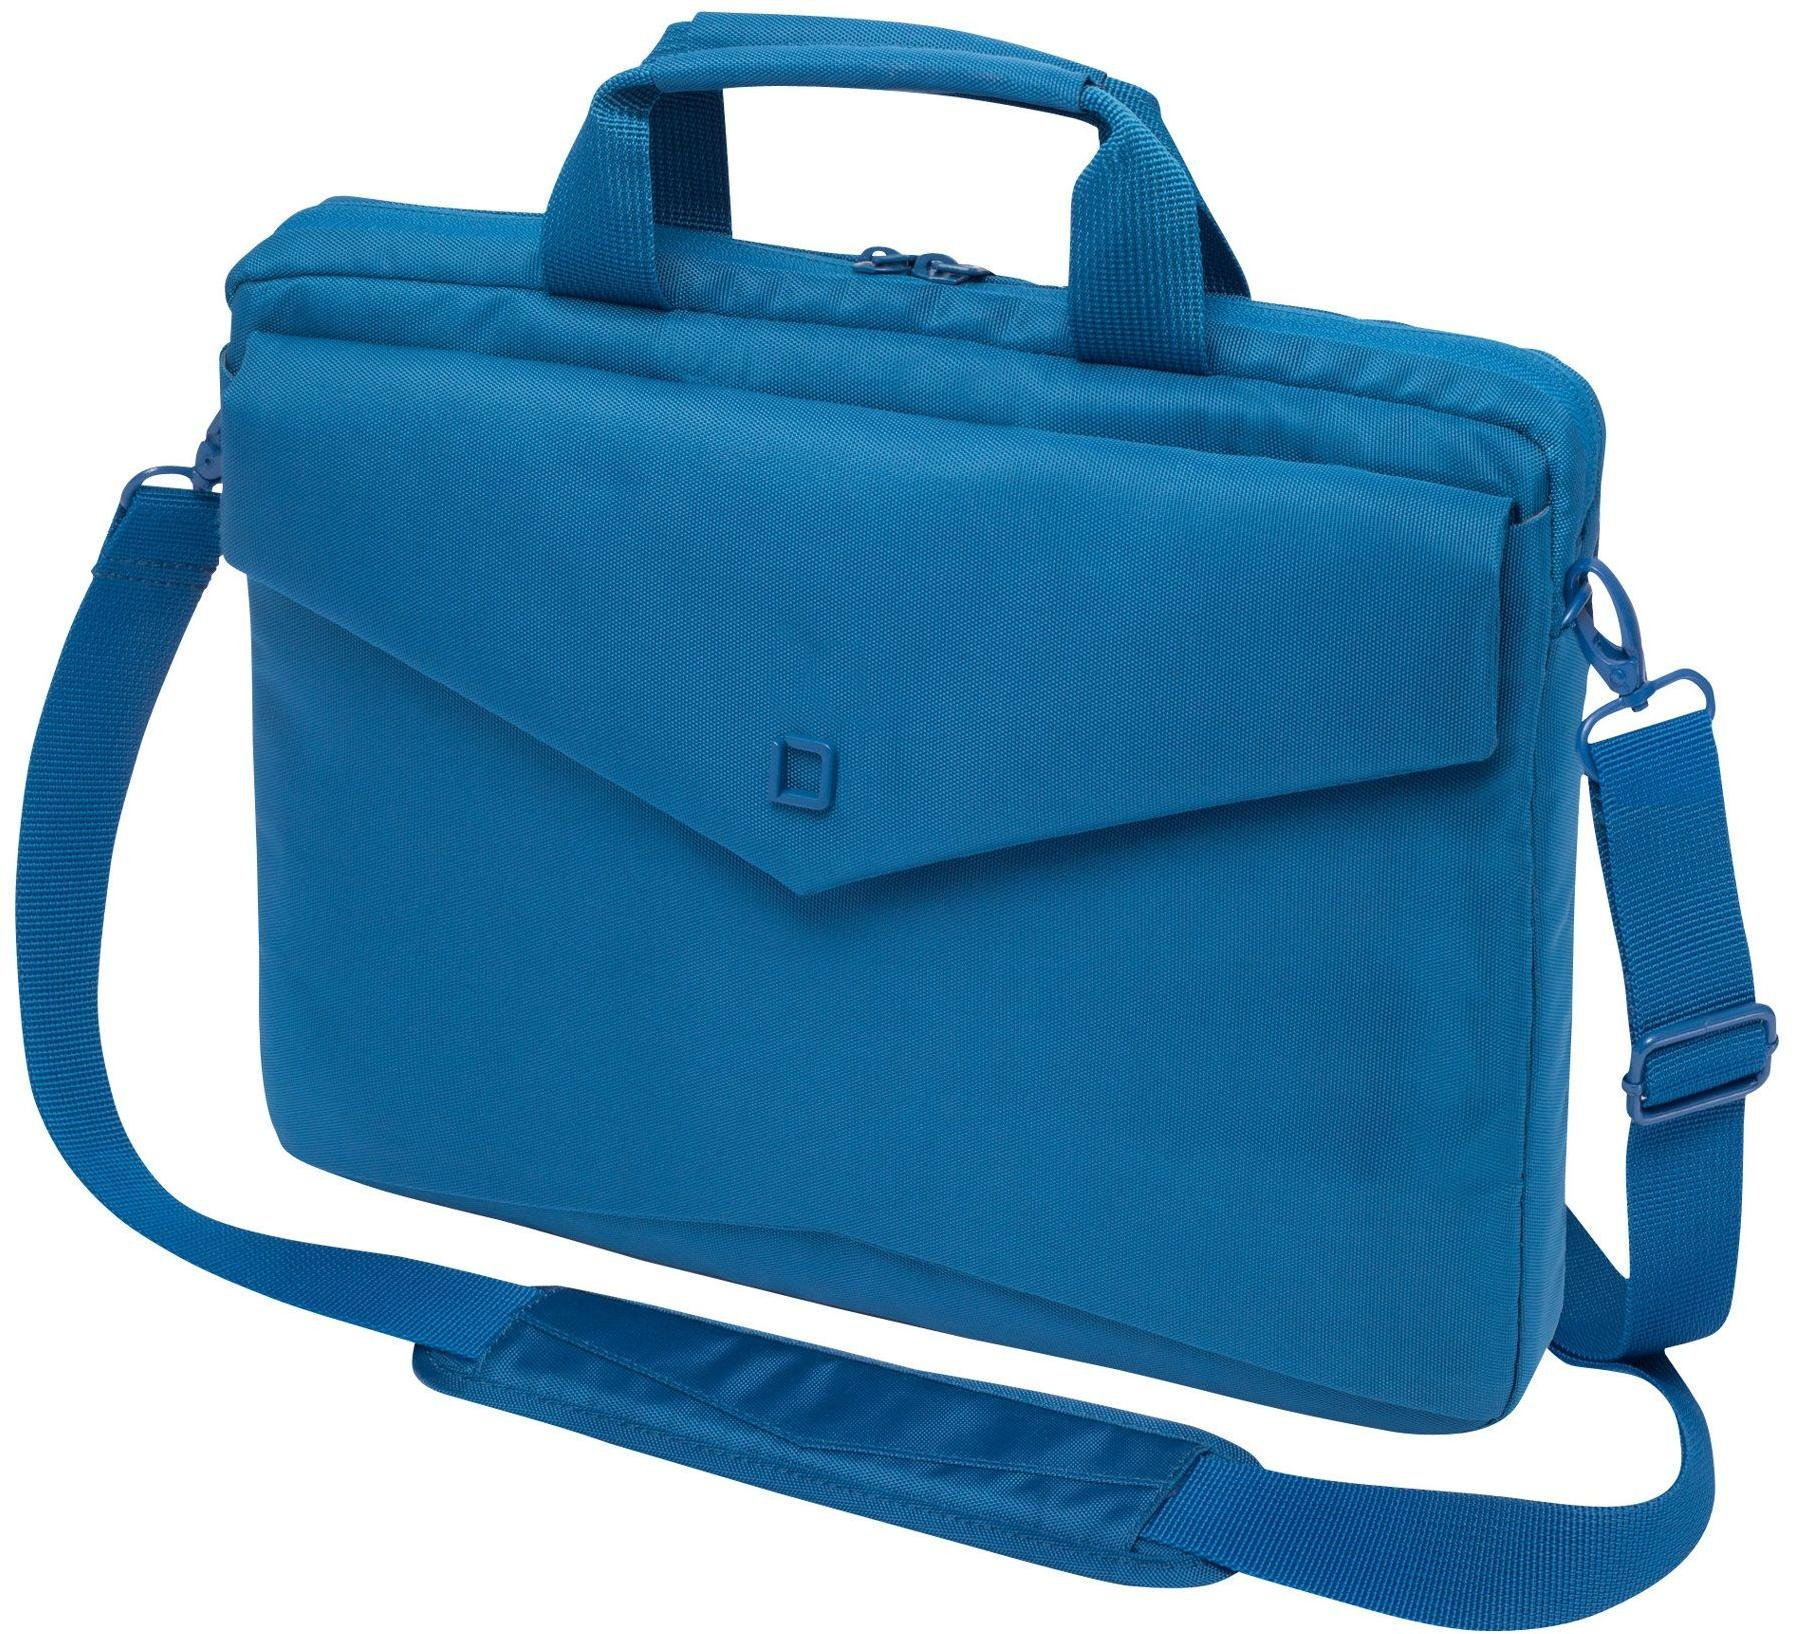 Best pris på Dicota Code SlimCase Laptop Bag 11 Se priser